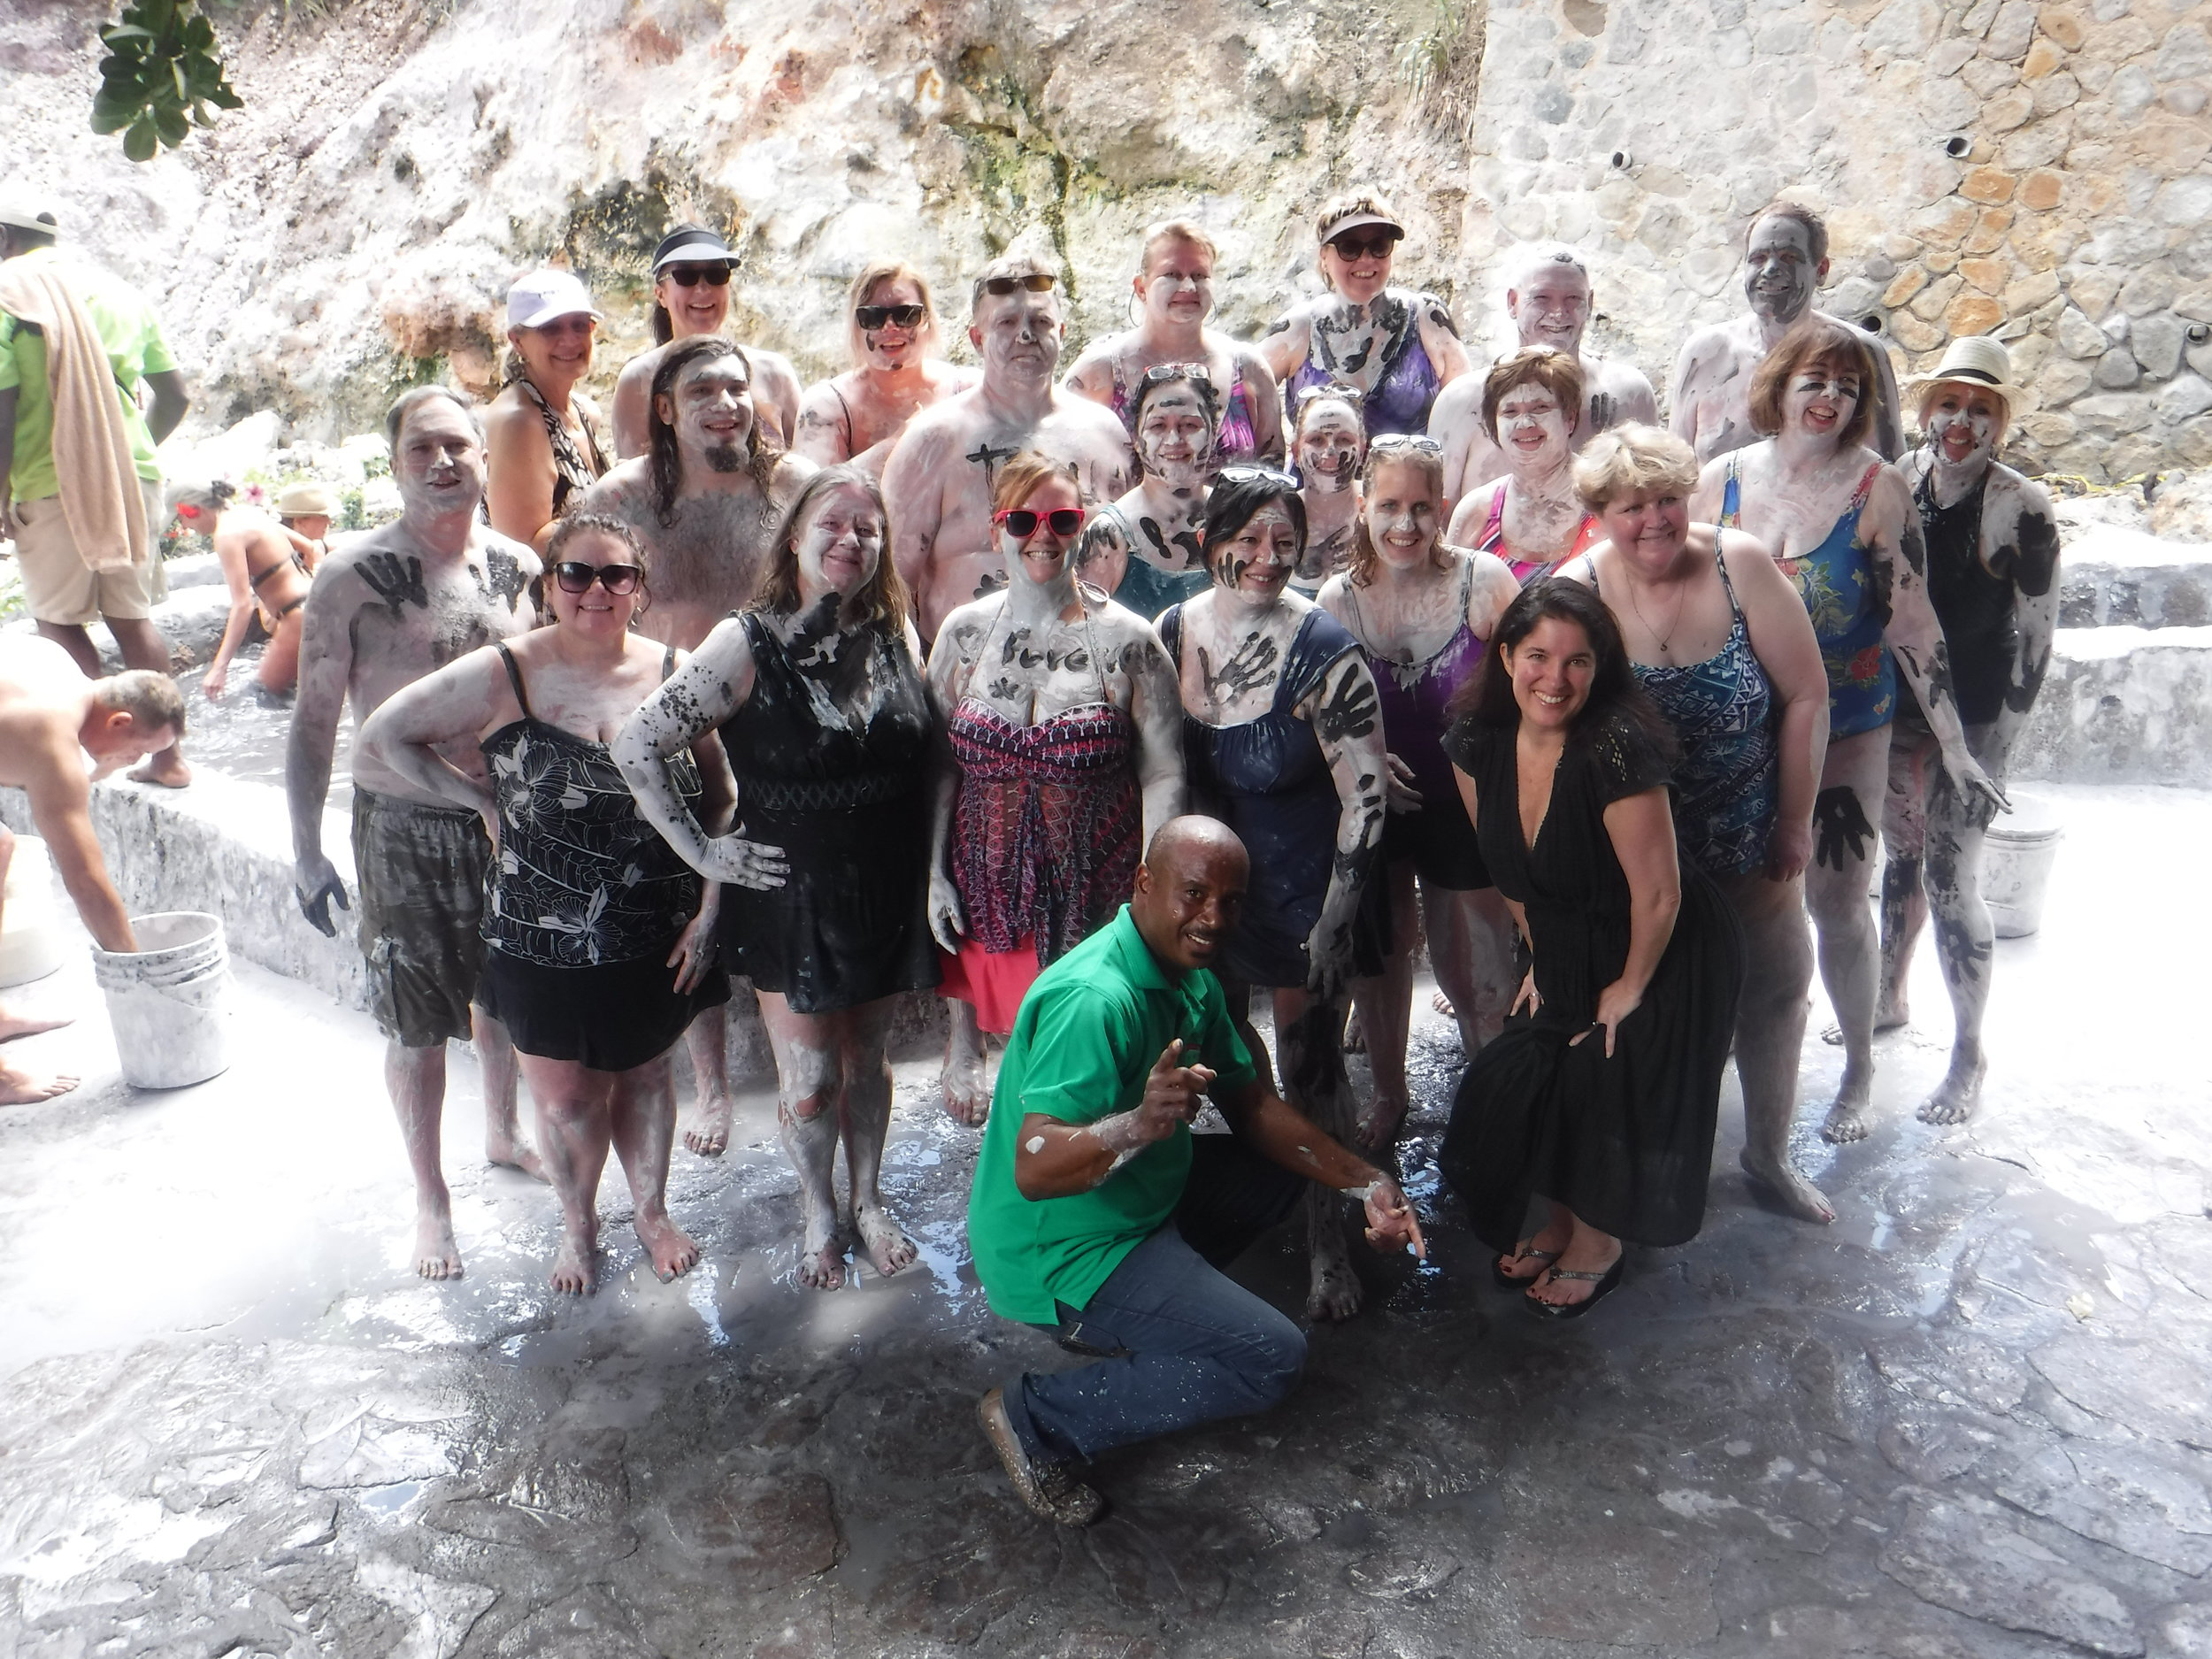 We were told that the volcanic mud would make us look 10 years younger! The jury is still out.